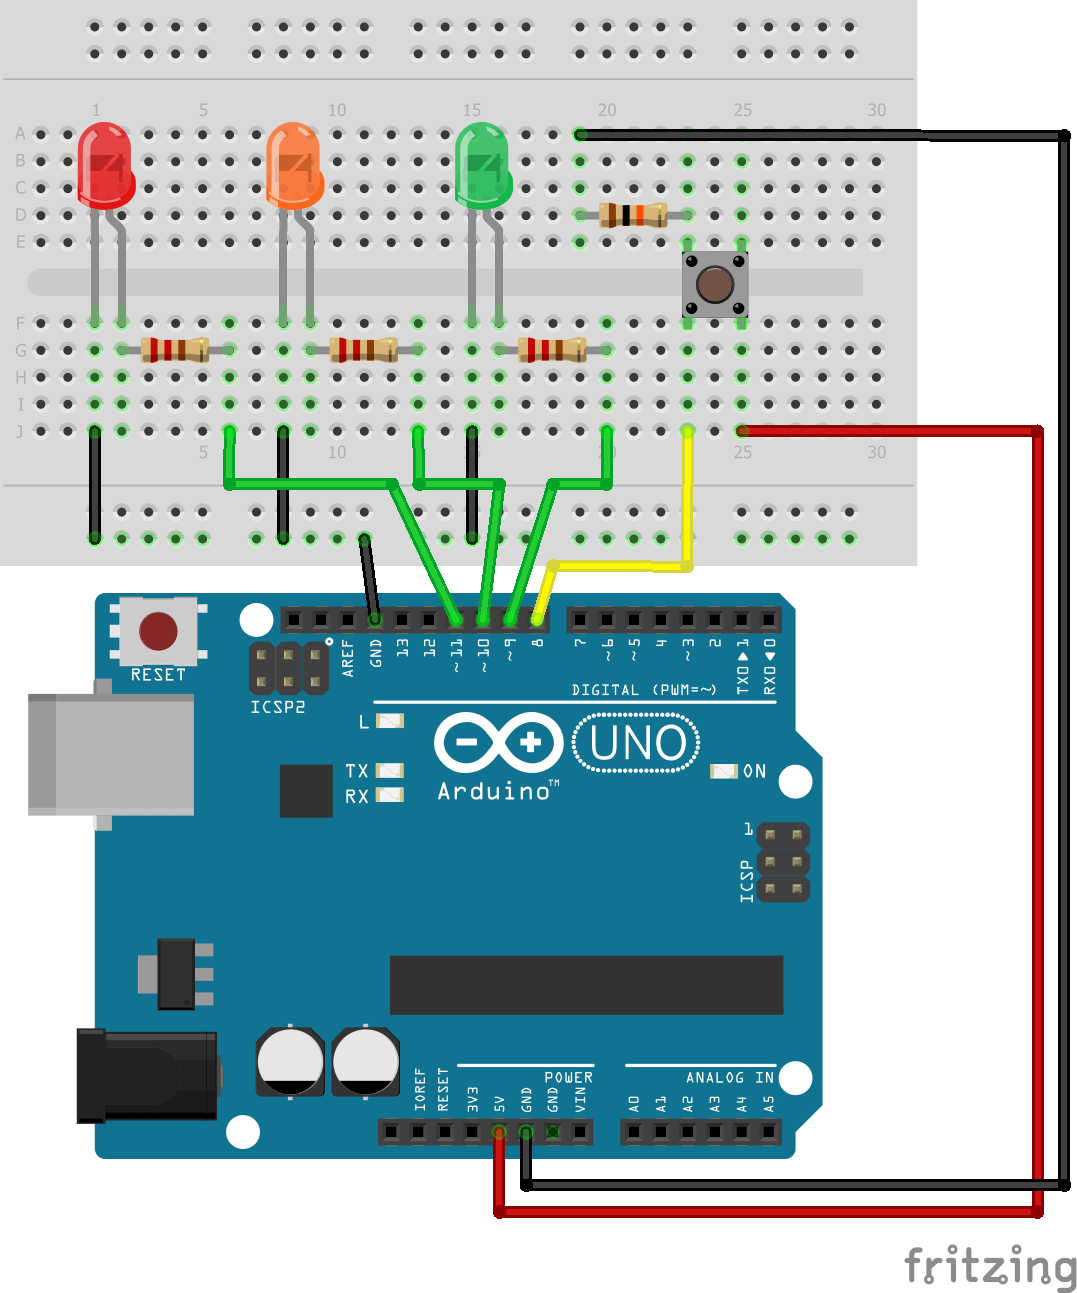 pin 7 arduino 2007 club car precedent wiring diagram control 3 leds with and one pushbutton  aranacorp